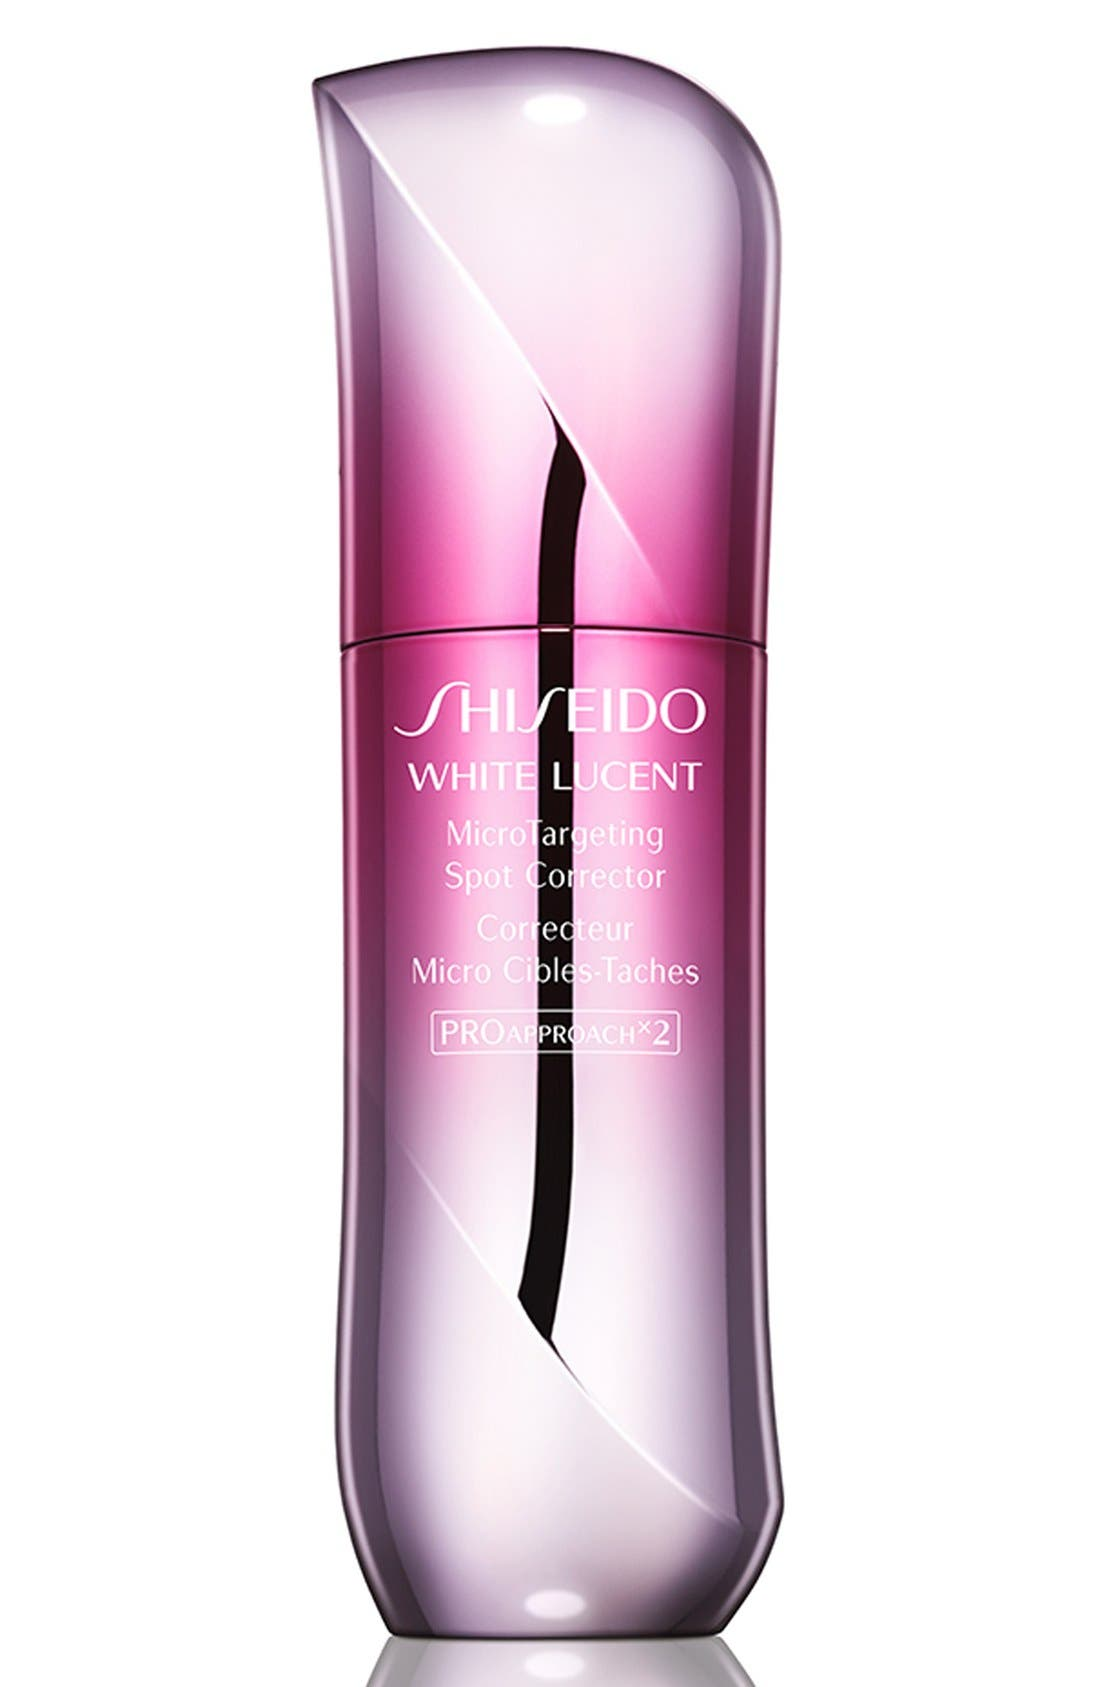 SHISEIDO, White Lucent MicroTargeting Spot Corrector, Alternate thumbnail 2, color, NO COLOR